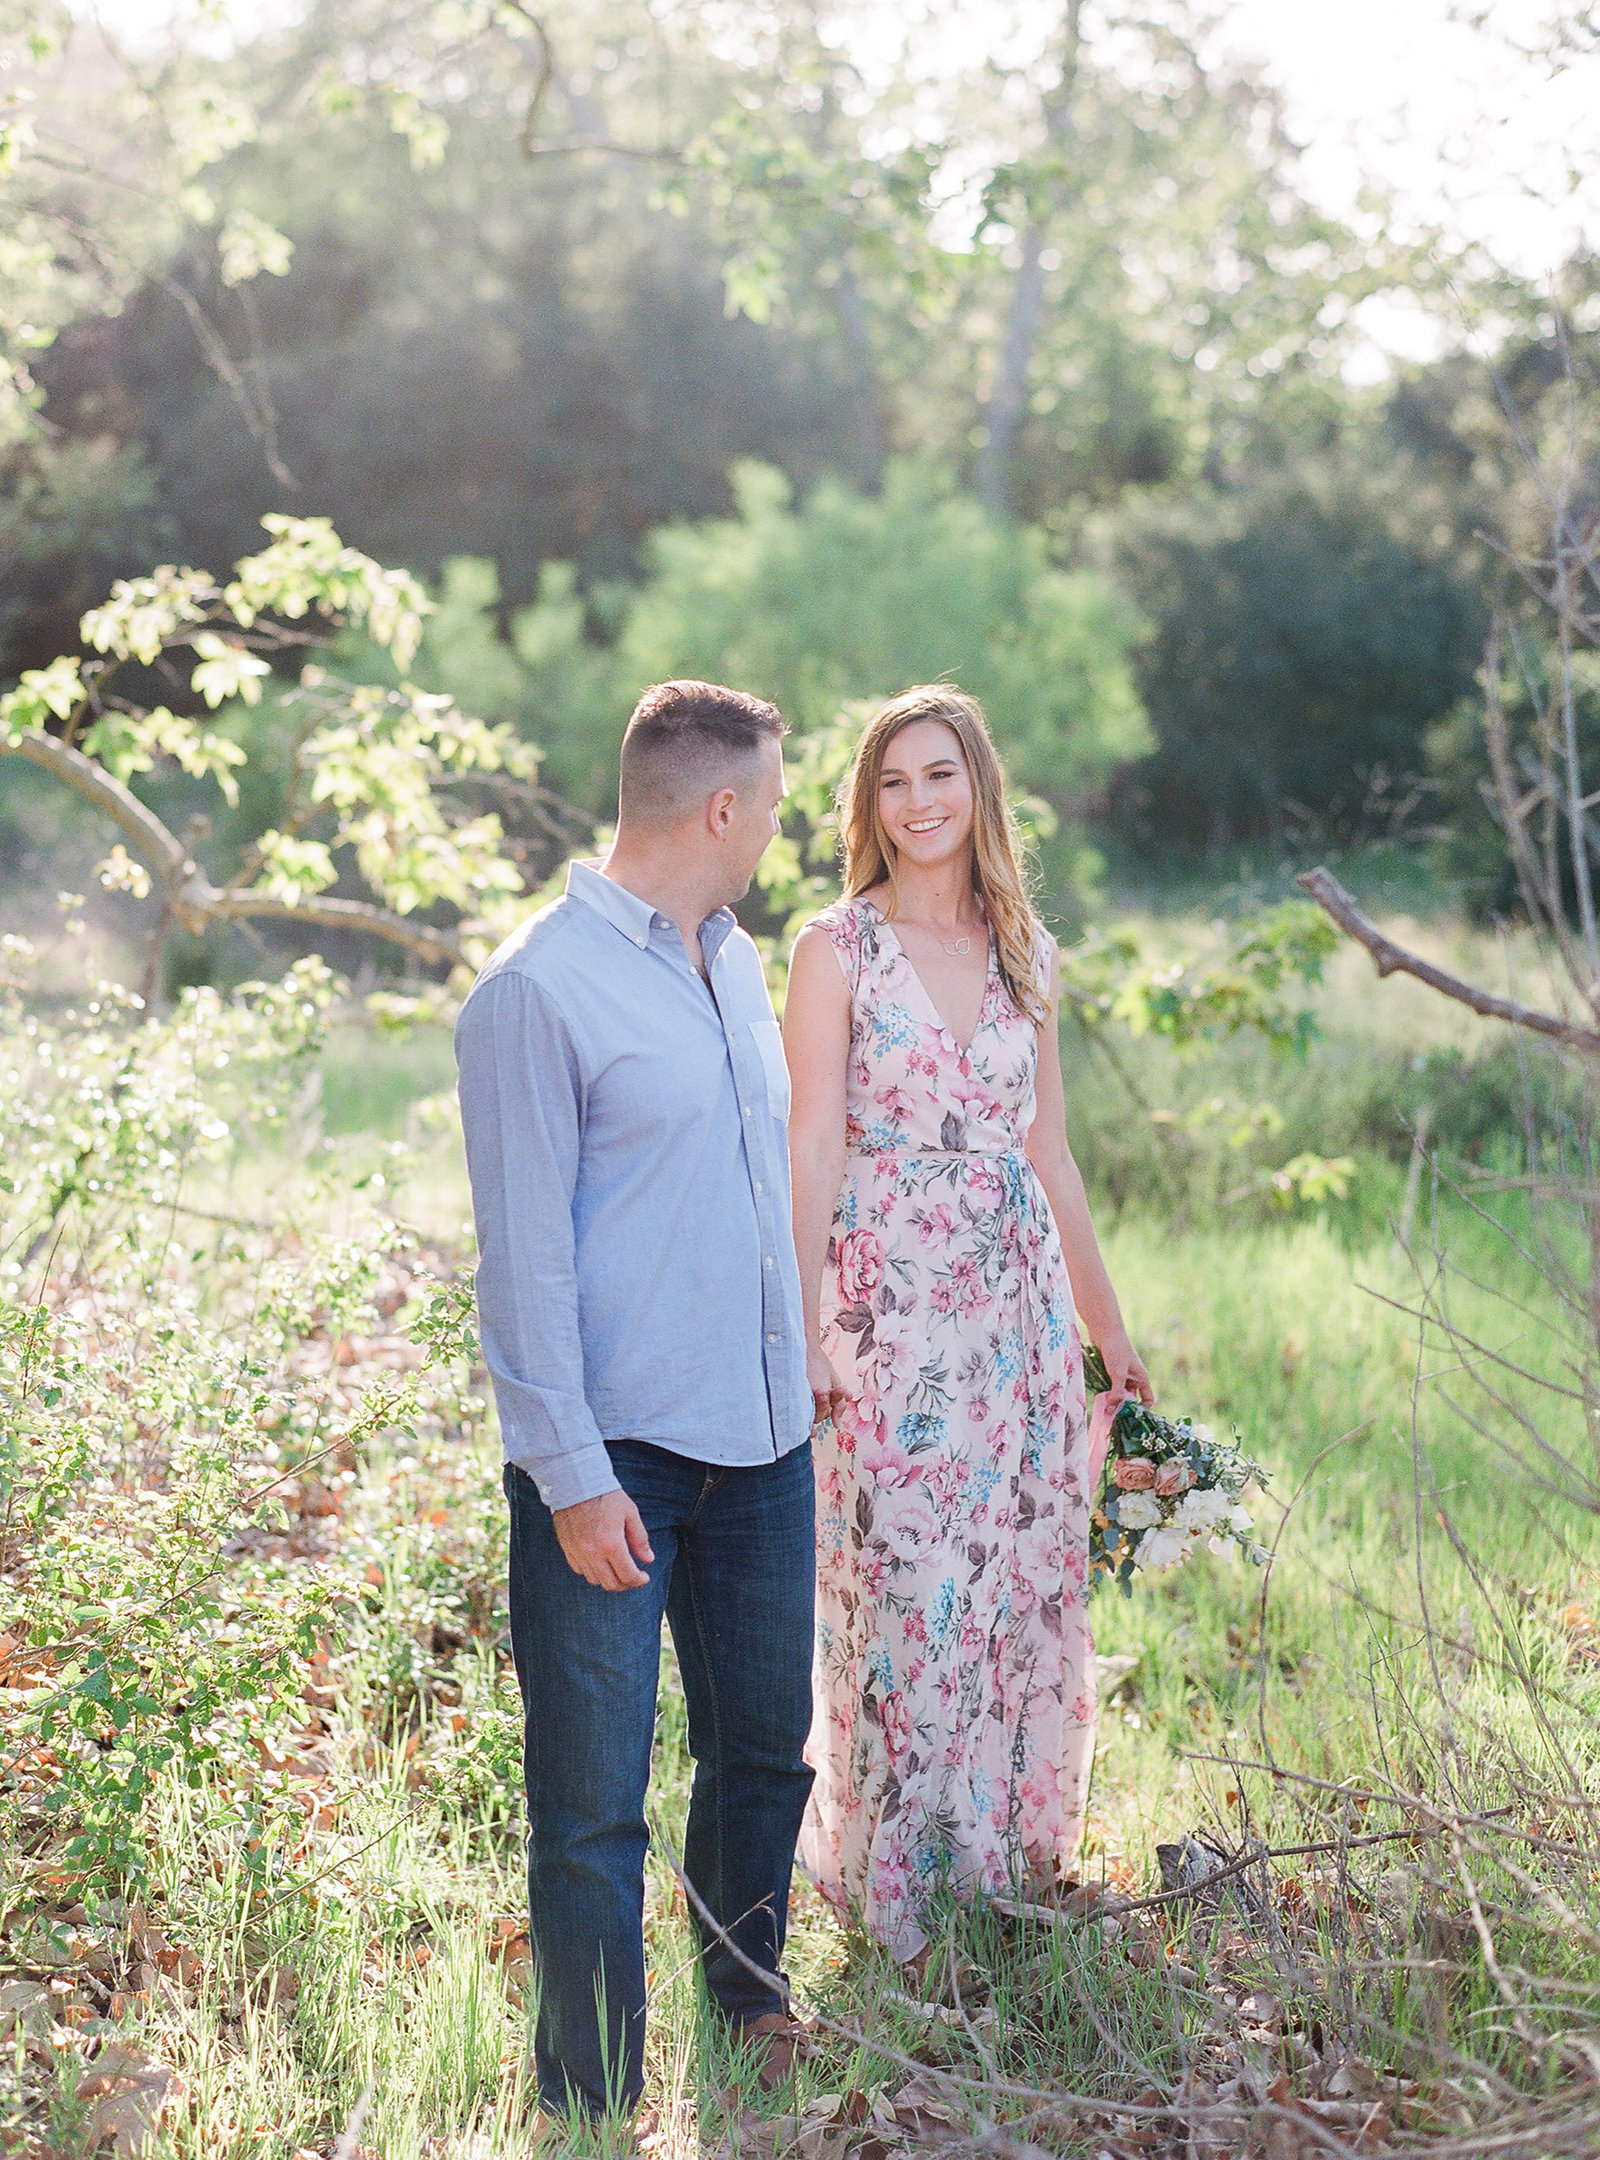 Pura-Soul-Photo-Rollin-Engagement-Film-44